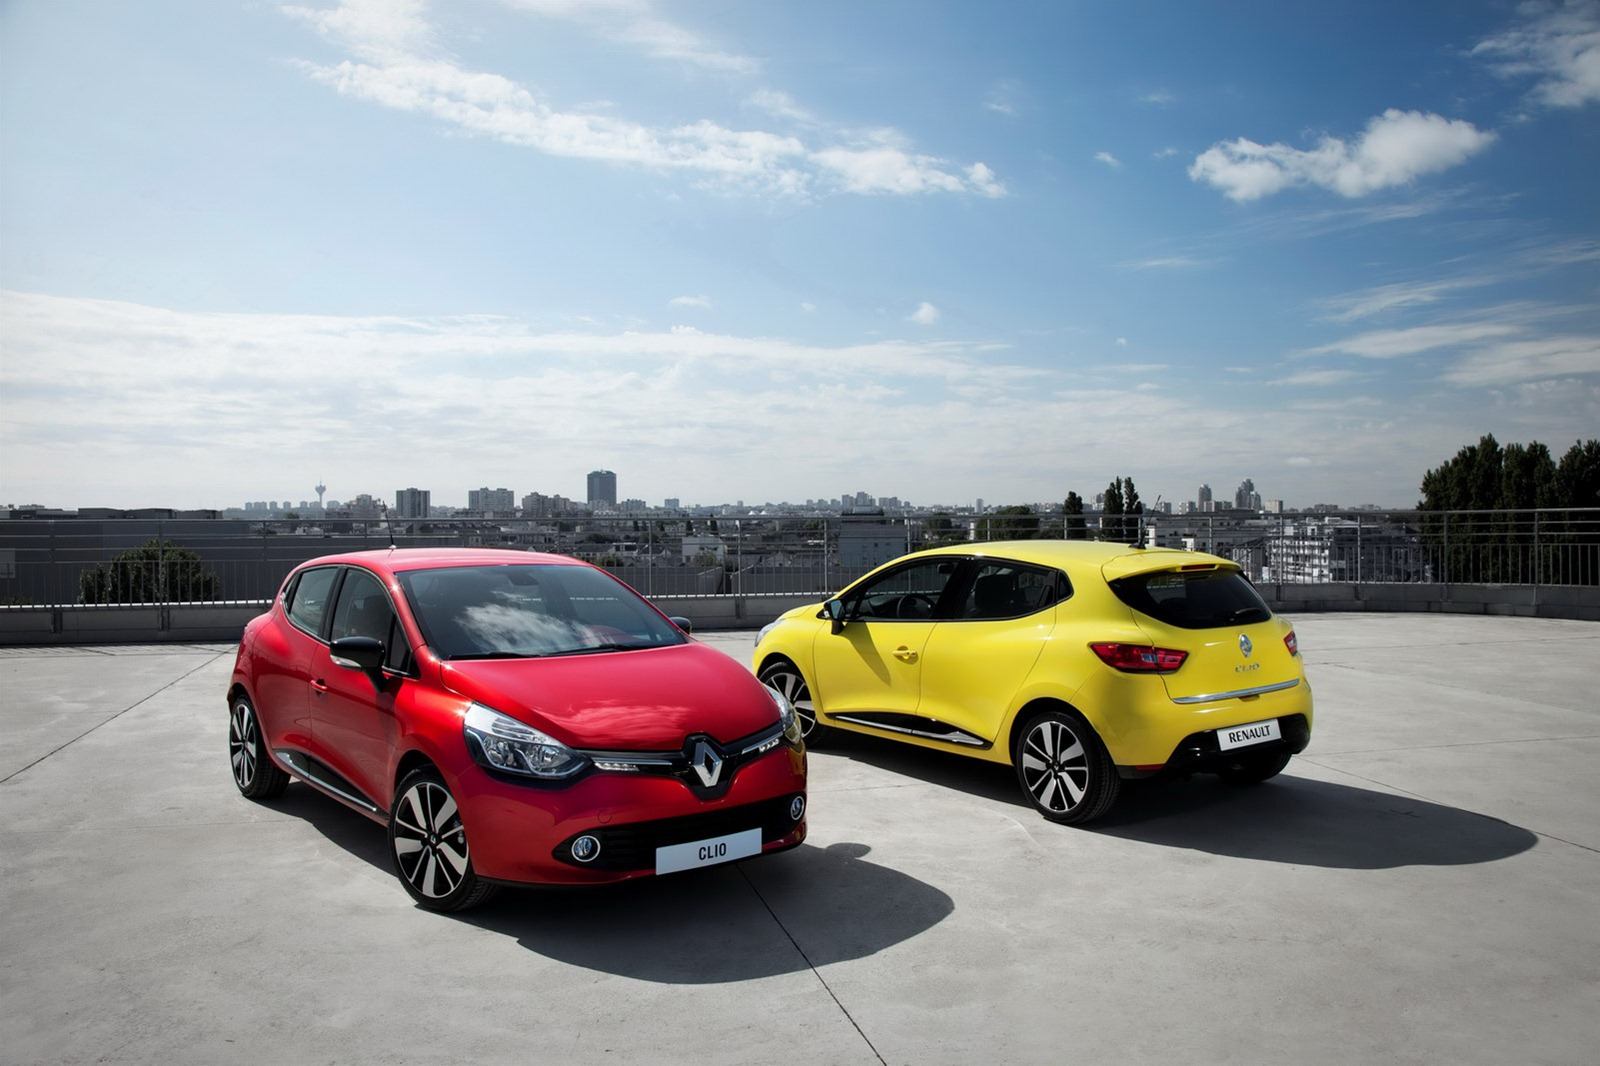 Renault Clio widescreen Car High Resolution Image Download